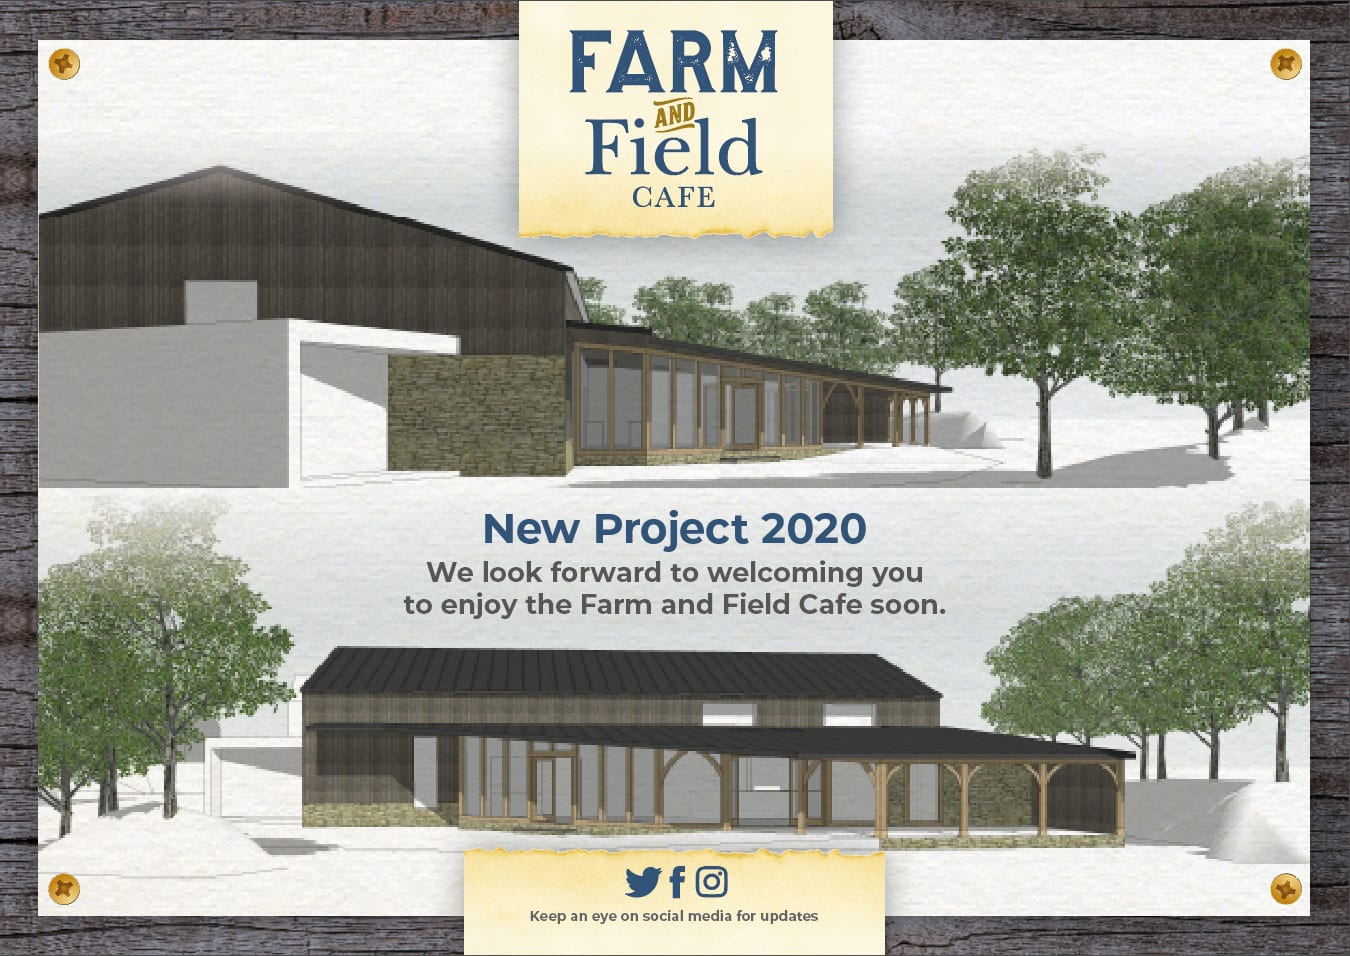 Building plans for Farm and Field Cafe, near Ilminster